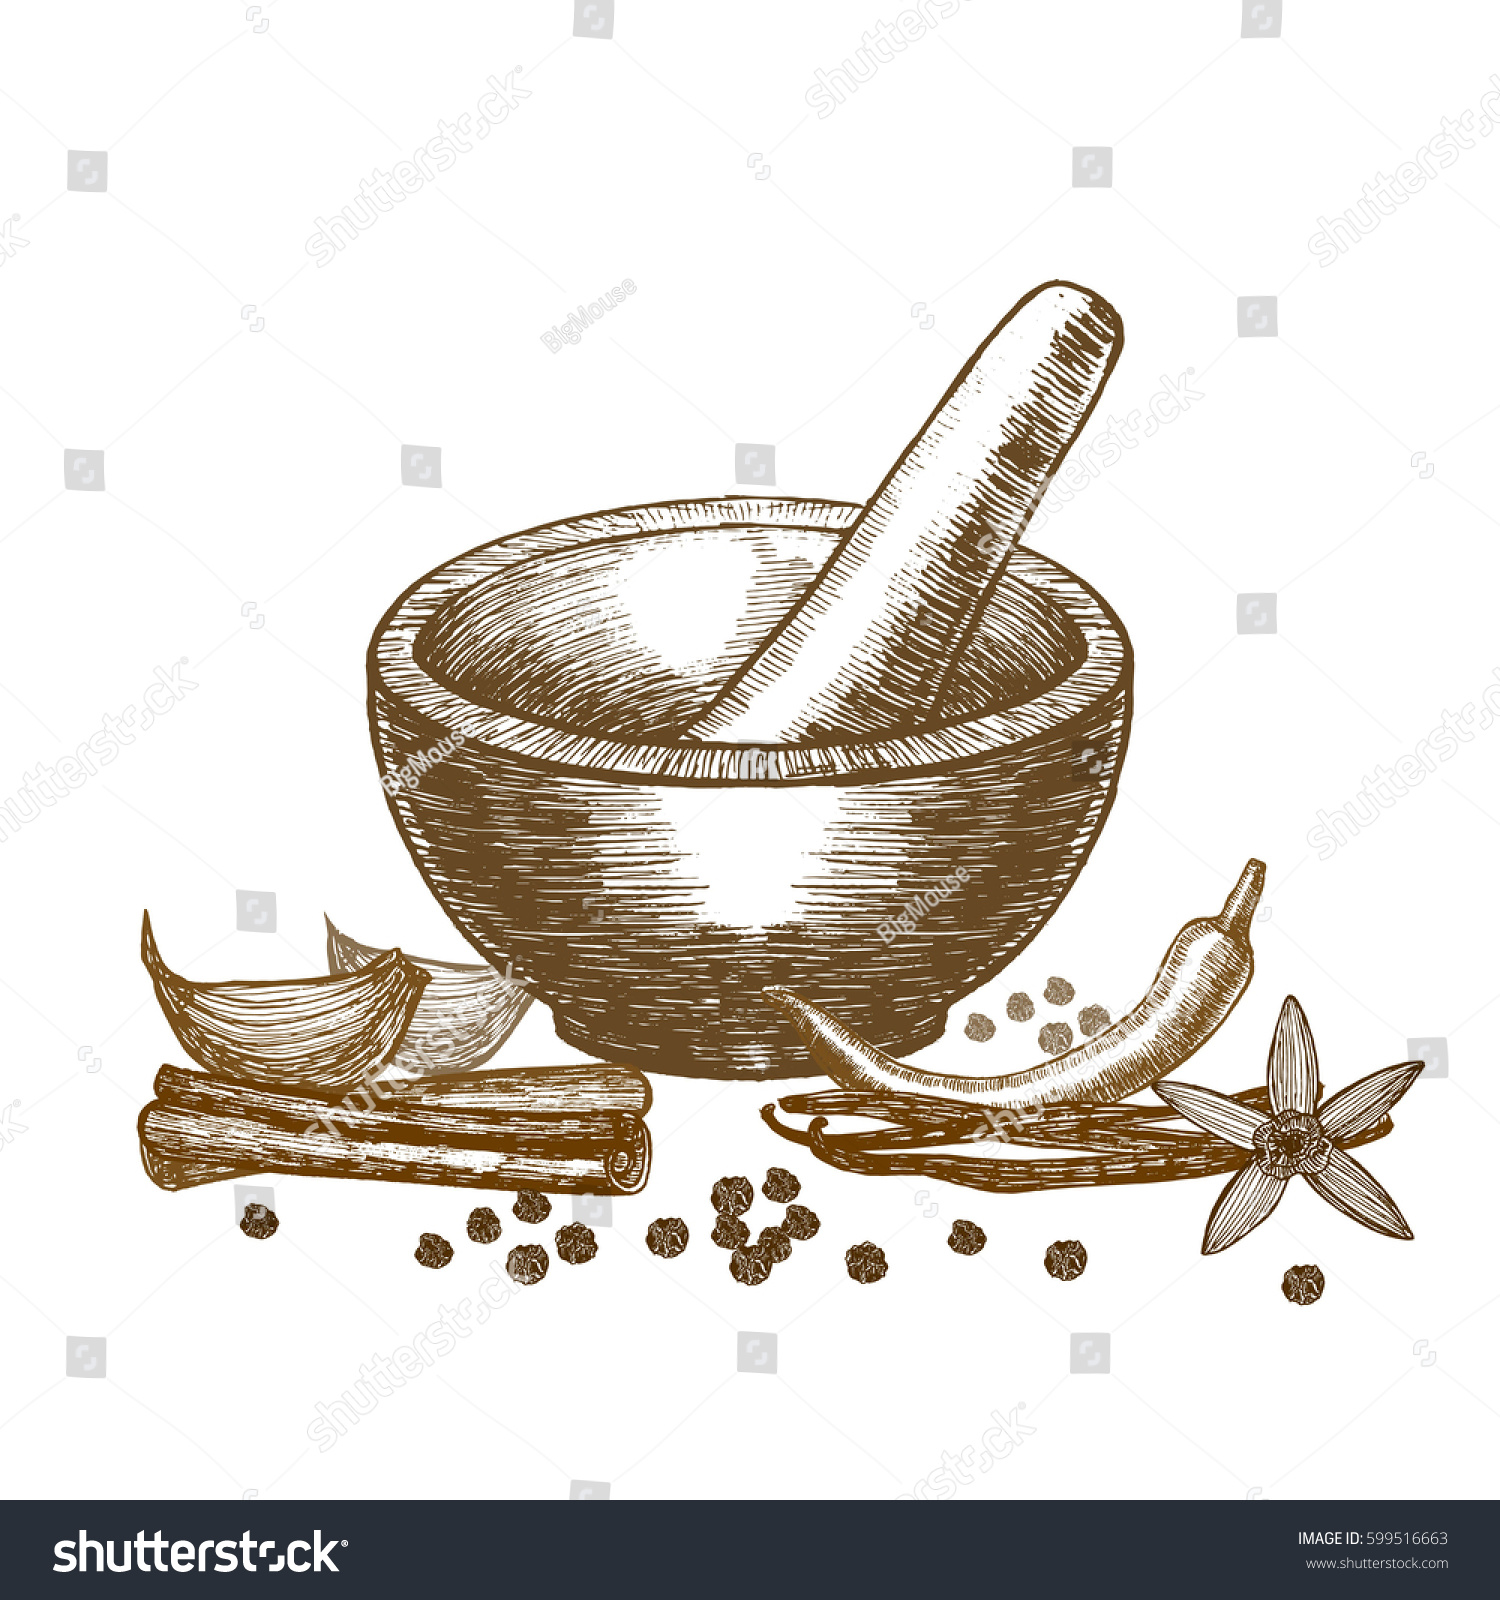 Spices Mortar Pestle Hand Draw Sketch Stock Illustration 599516663 ... for Mortar And Pestle Drawing  174mzq